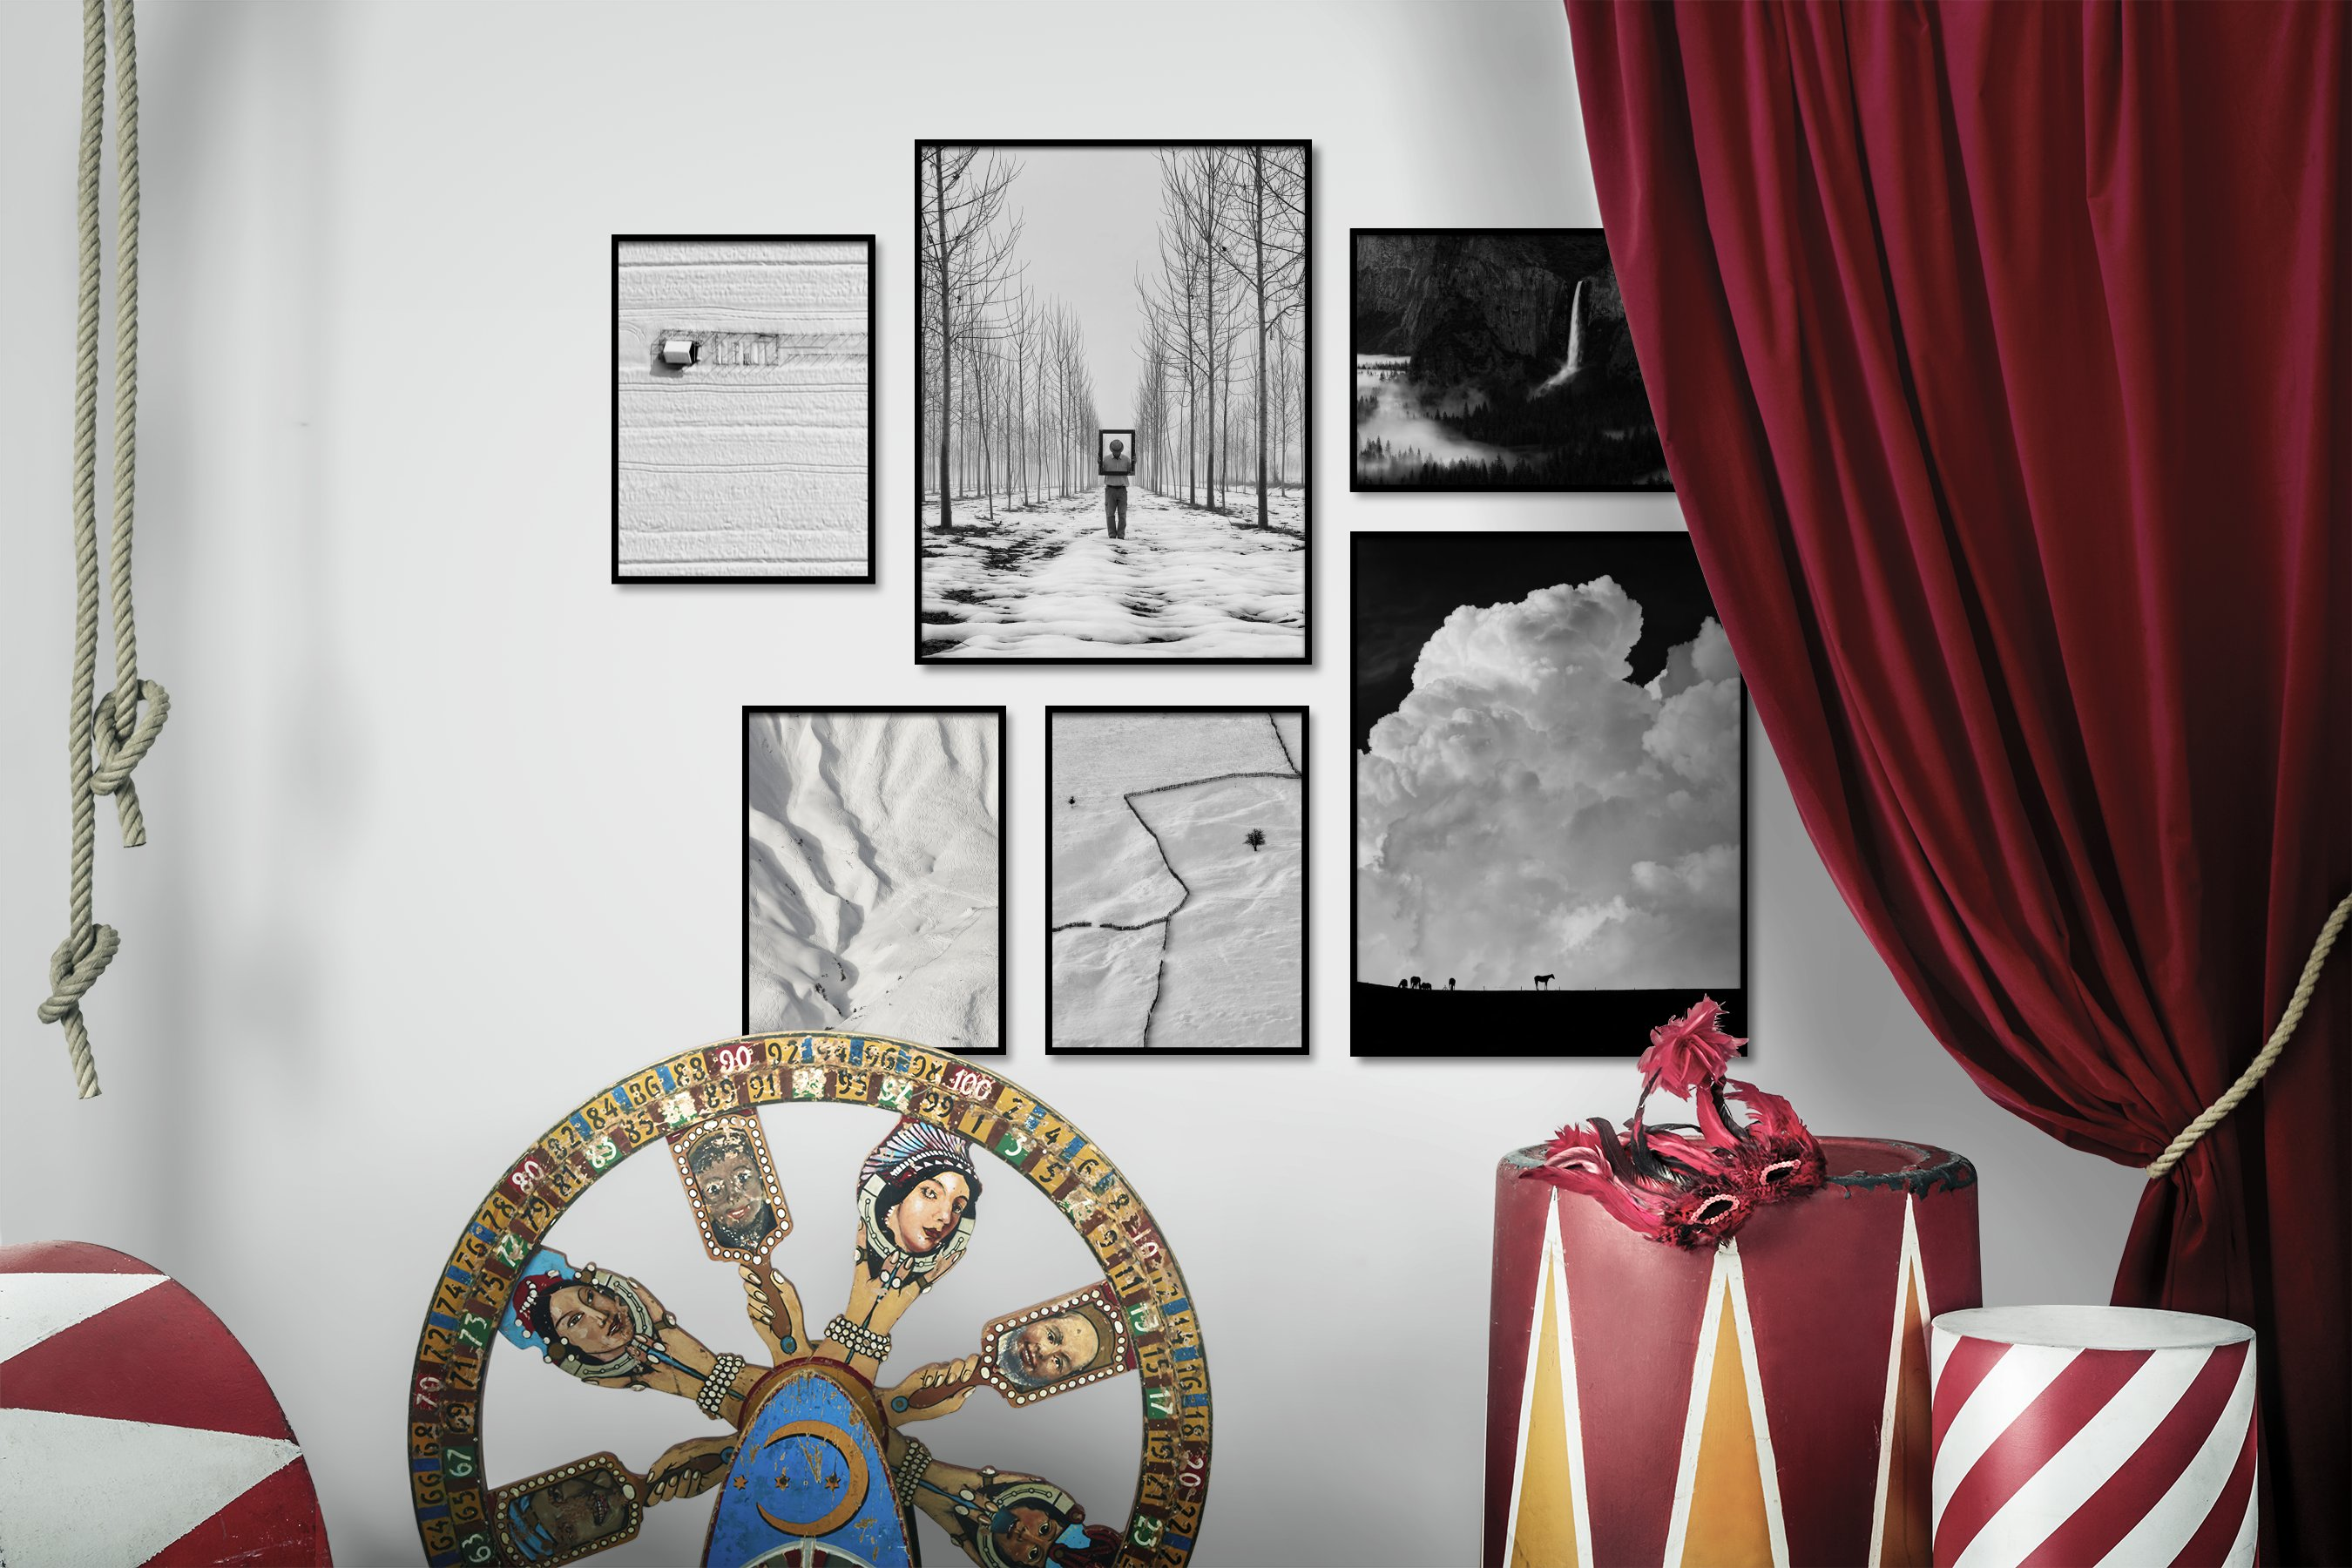 Gallery wall idea with six framed pictures arranged on a wall depicting Black & White, For the Minimalist, Country Life, For the Moderate, Nature, Americana, Mindfulness, and Animals